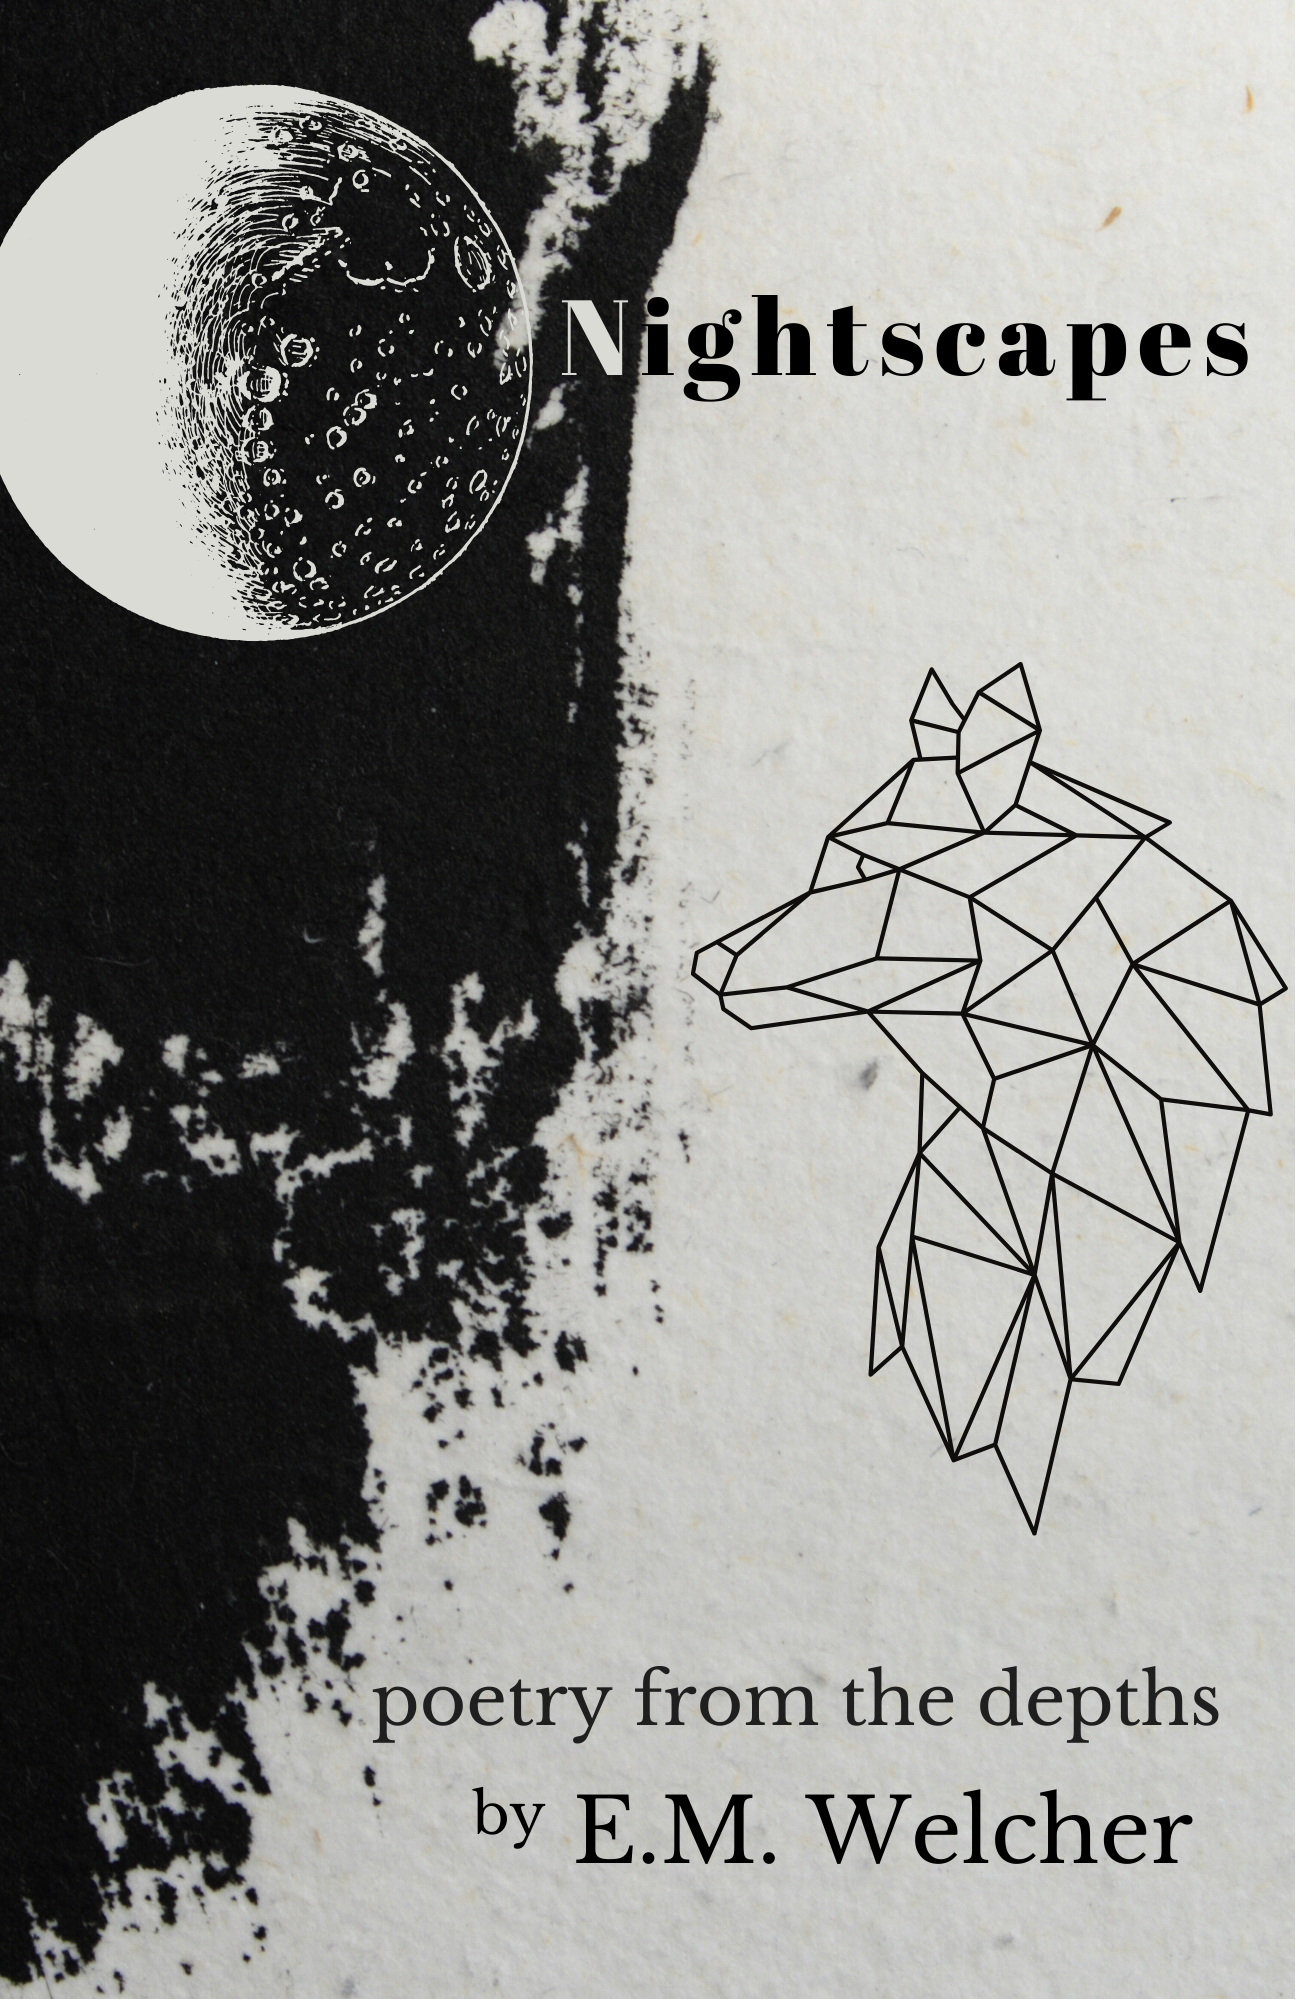 Nightscapes: poetry from the depths